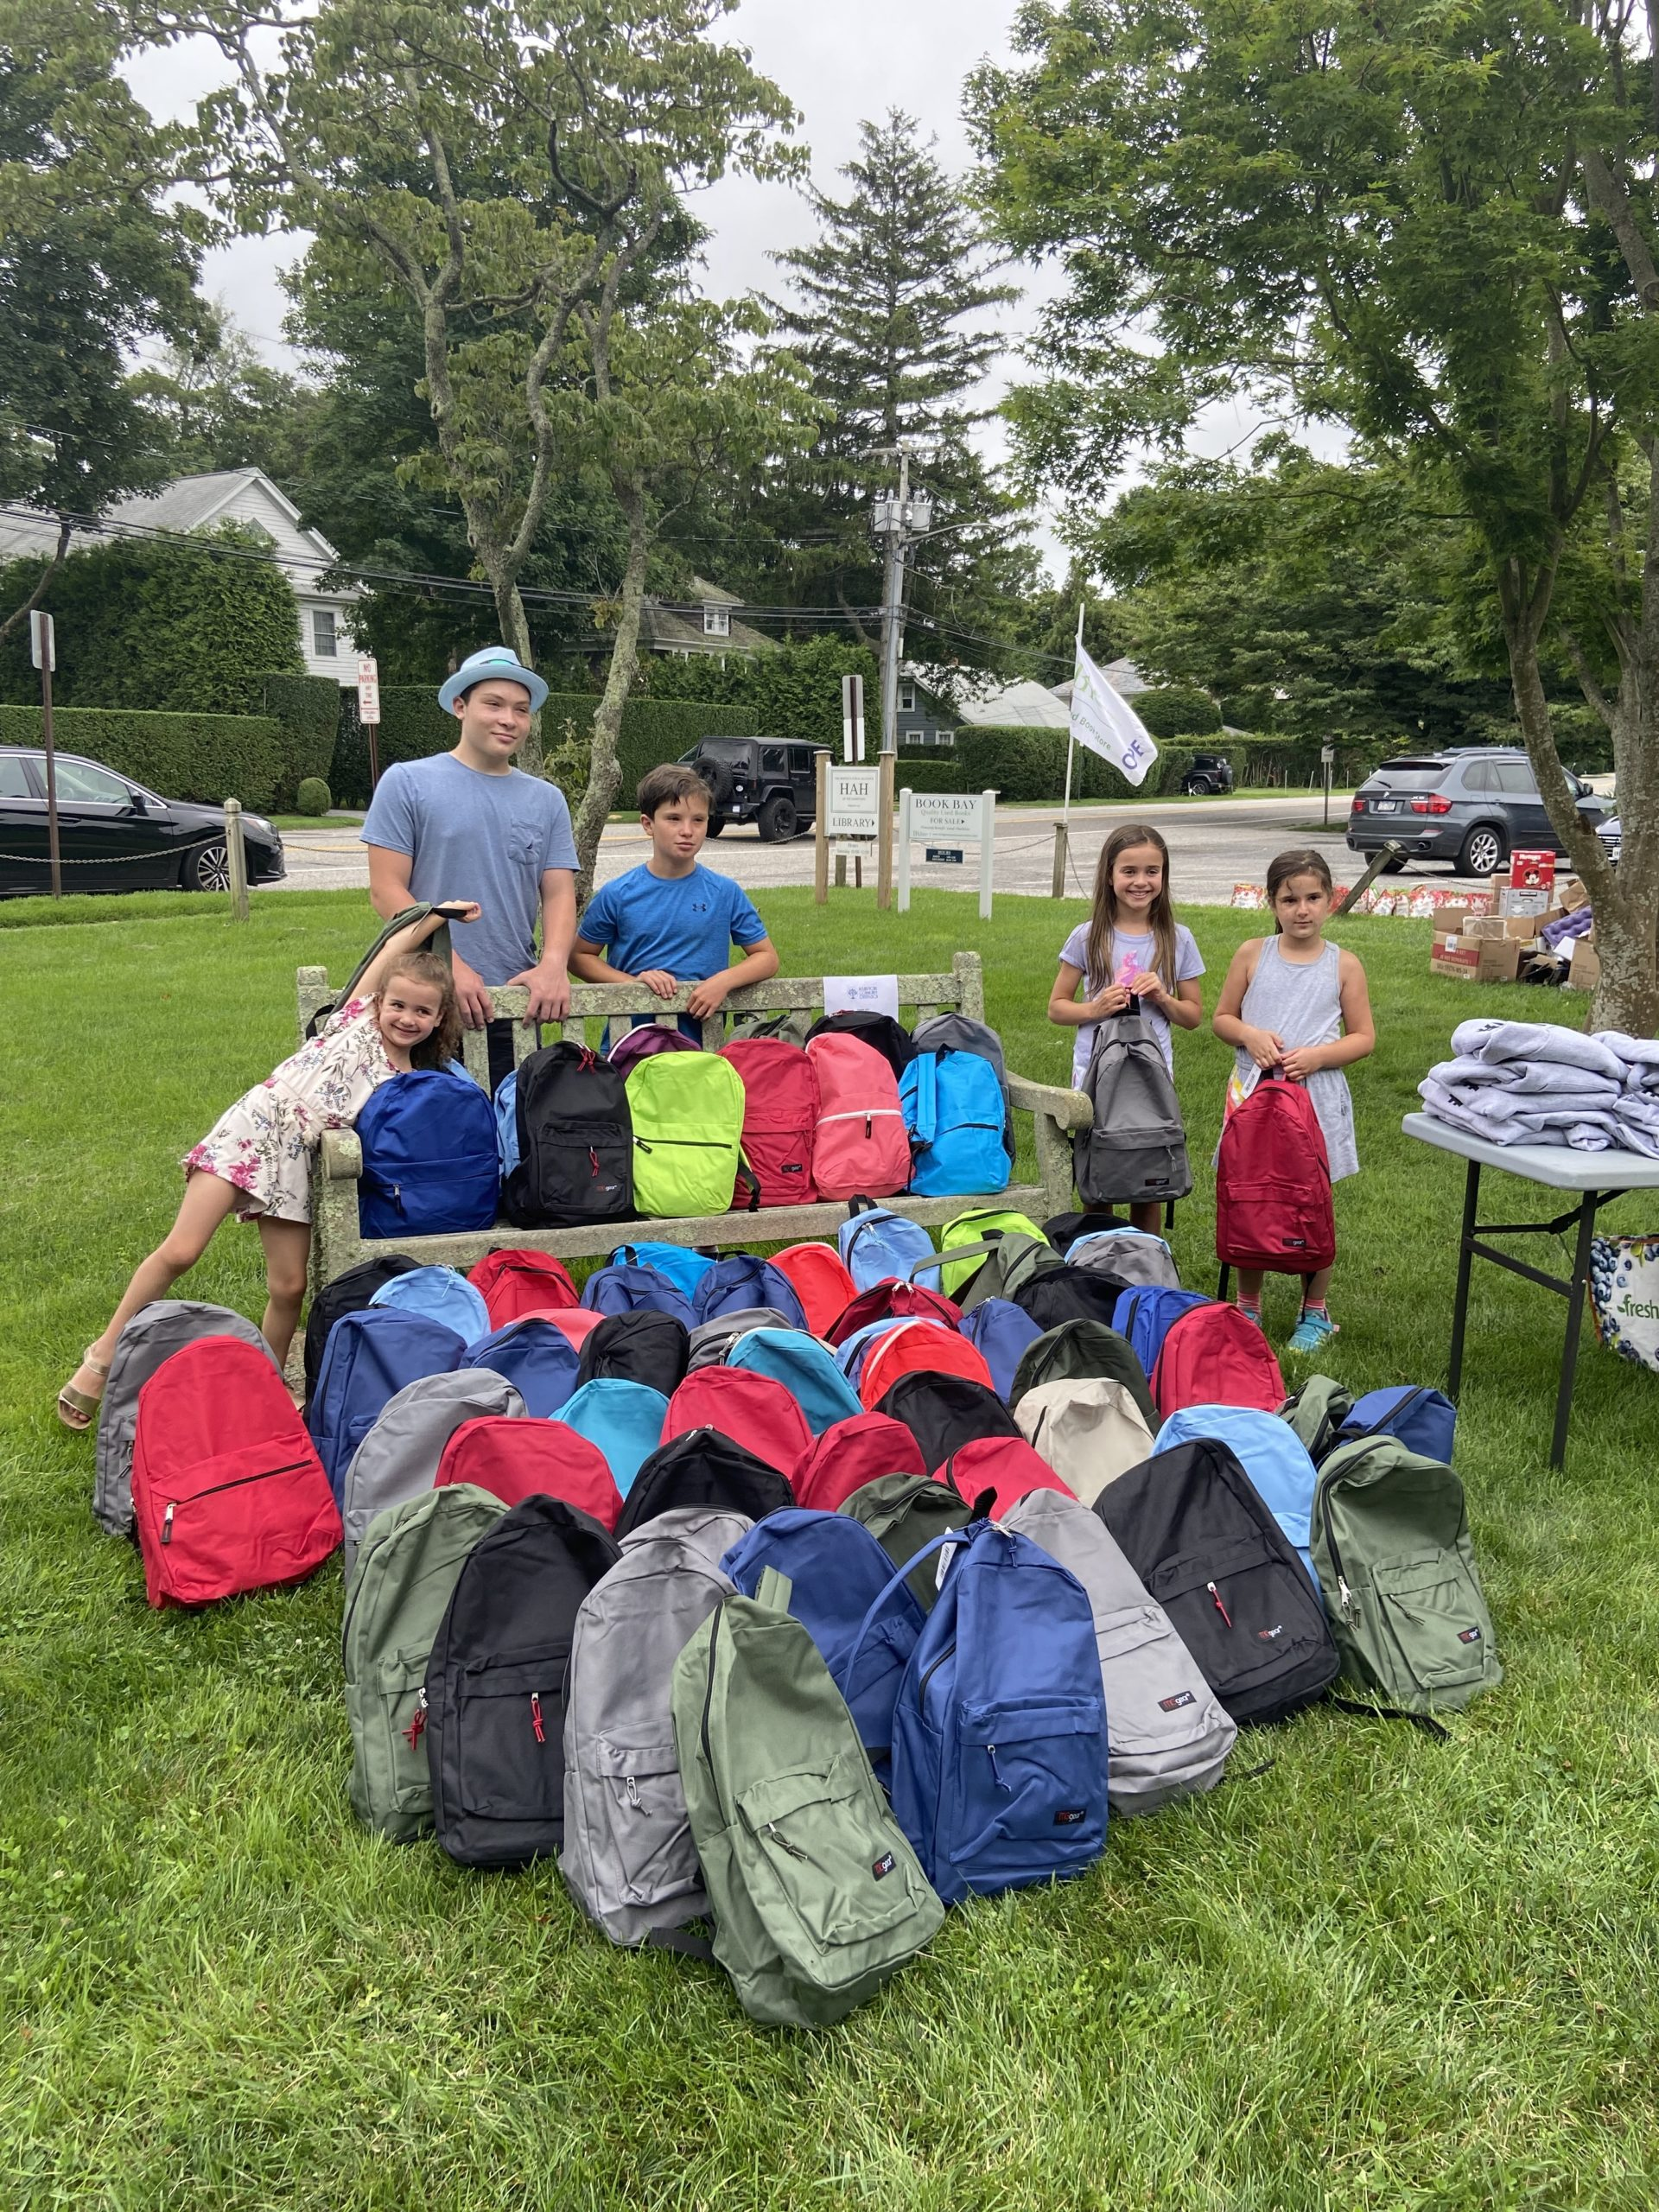 Young volunteers showed up to pack backpacks full of summer essentials for the local community.